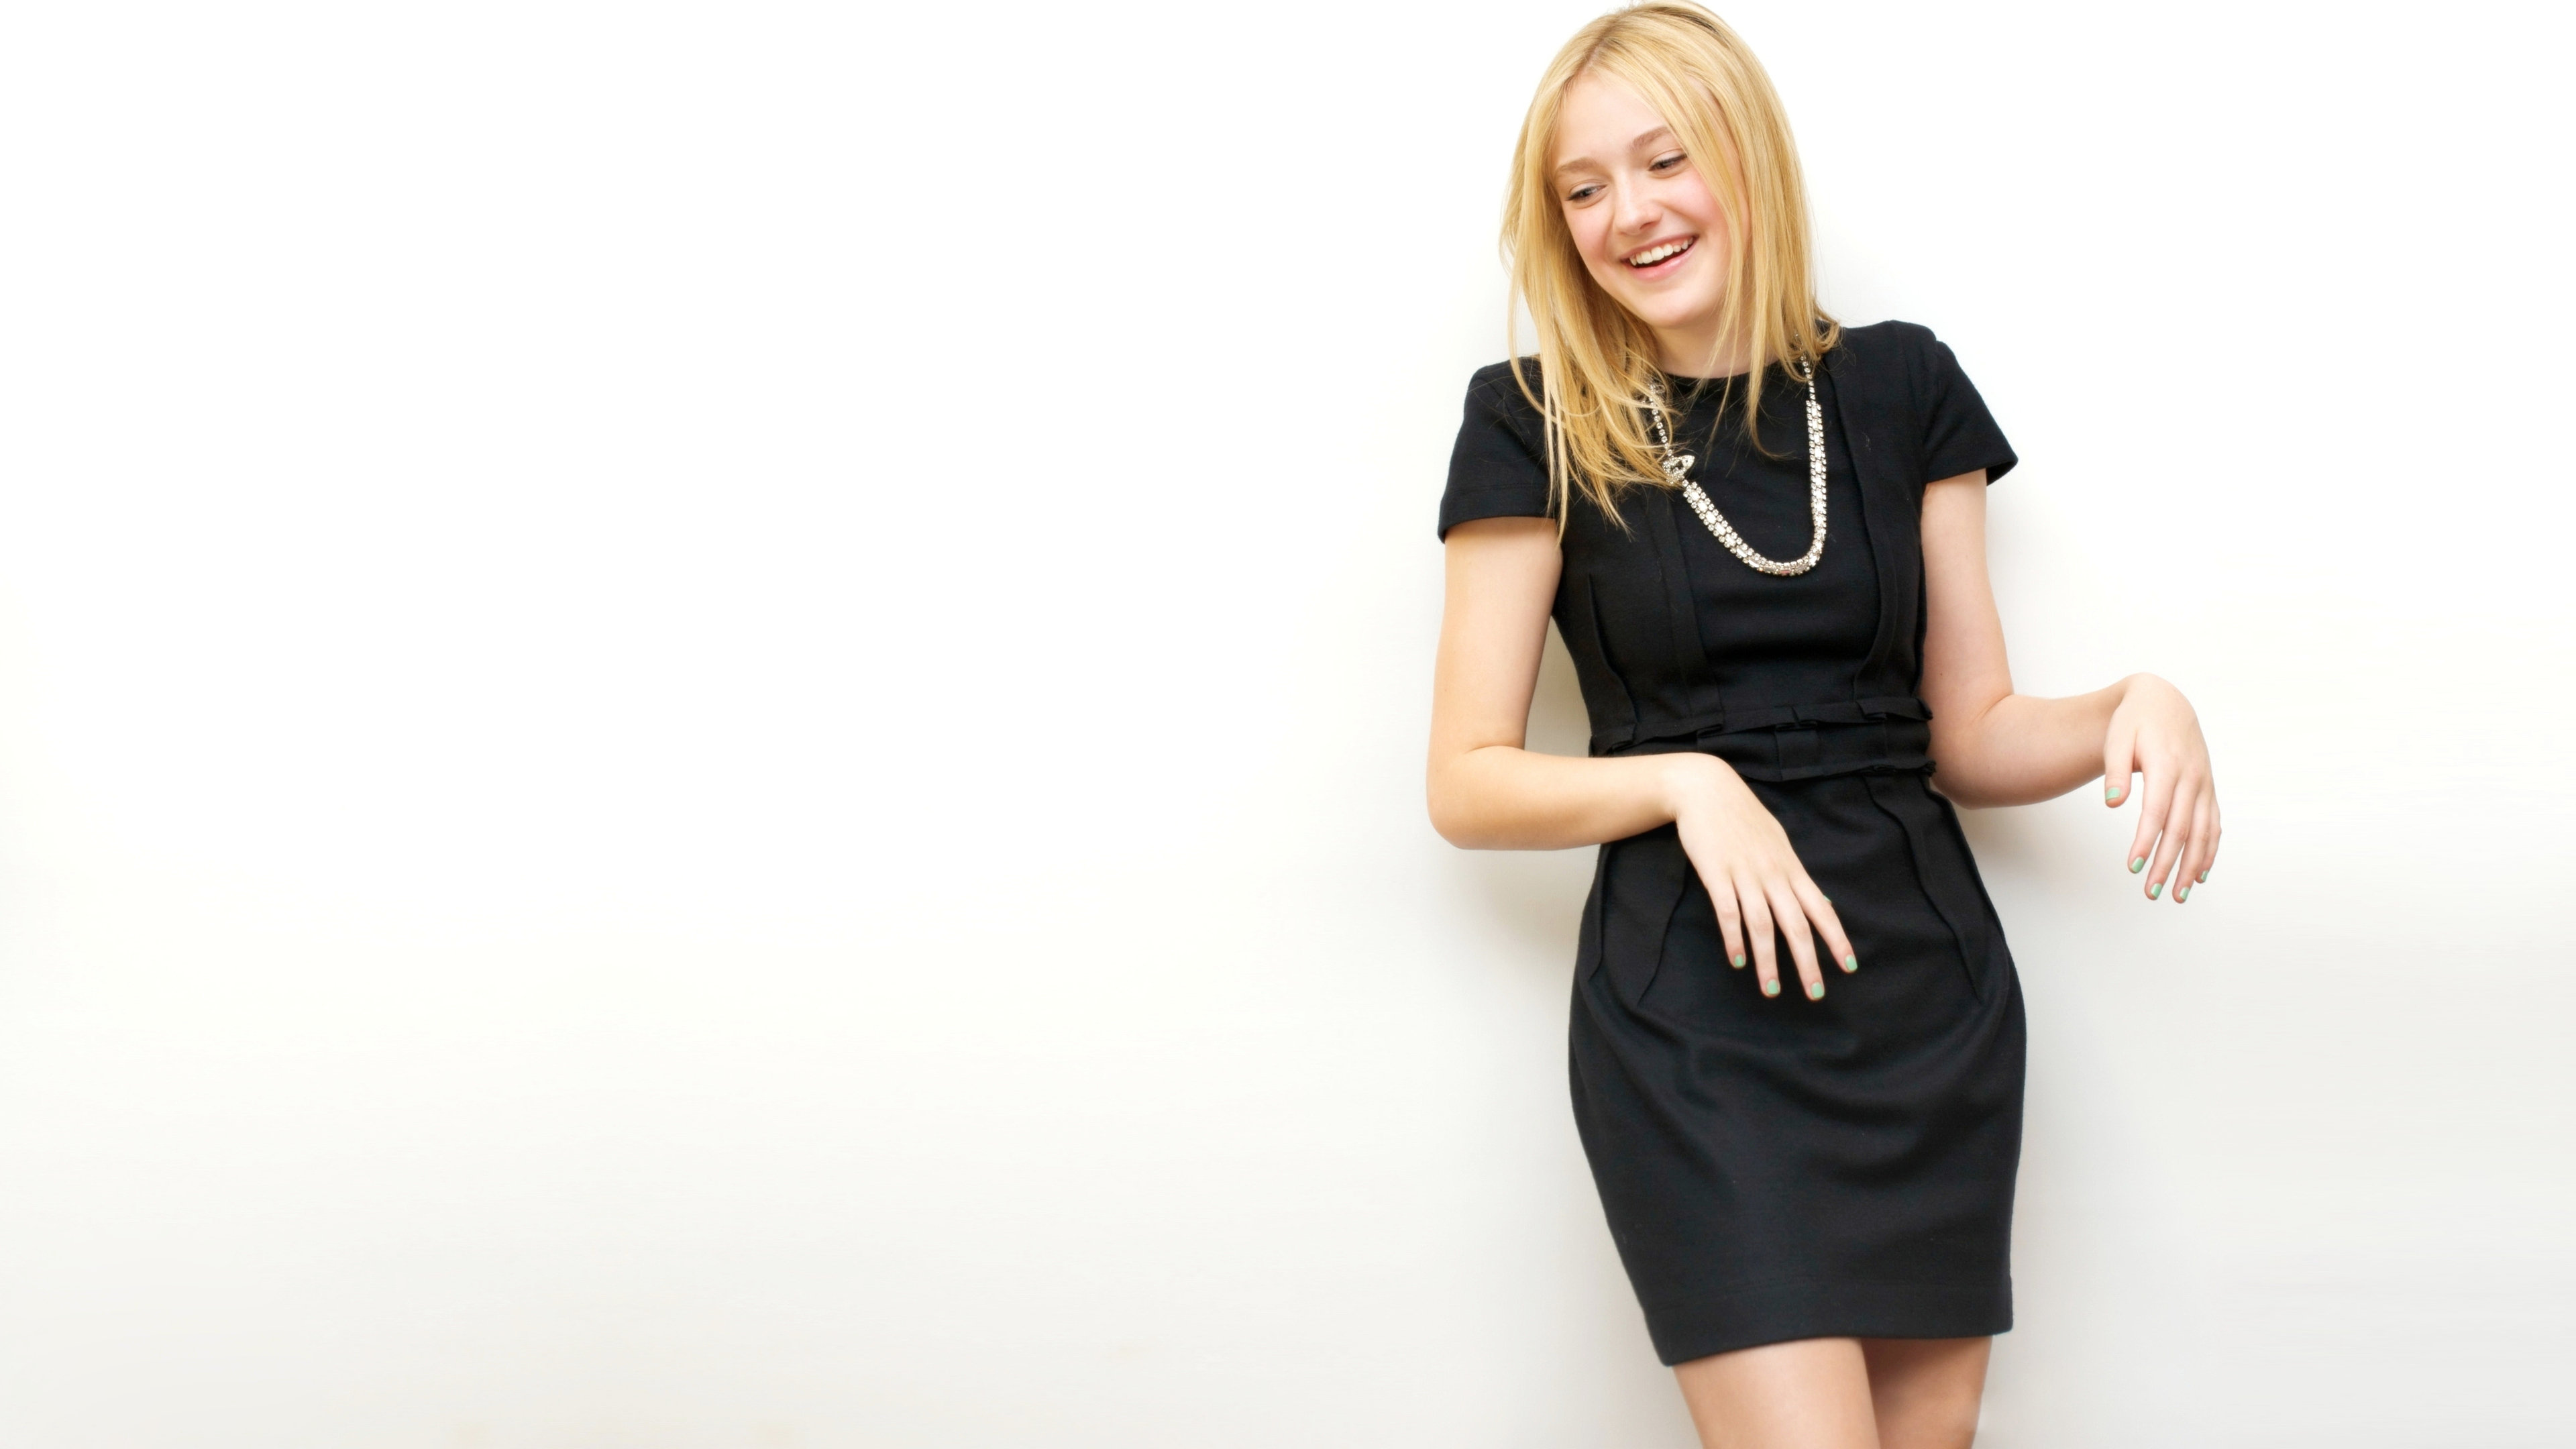 Free Dakota Fanning high quality wallpaper ID:144253 for uhd 4k computer